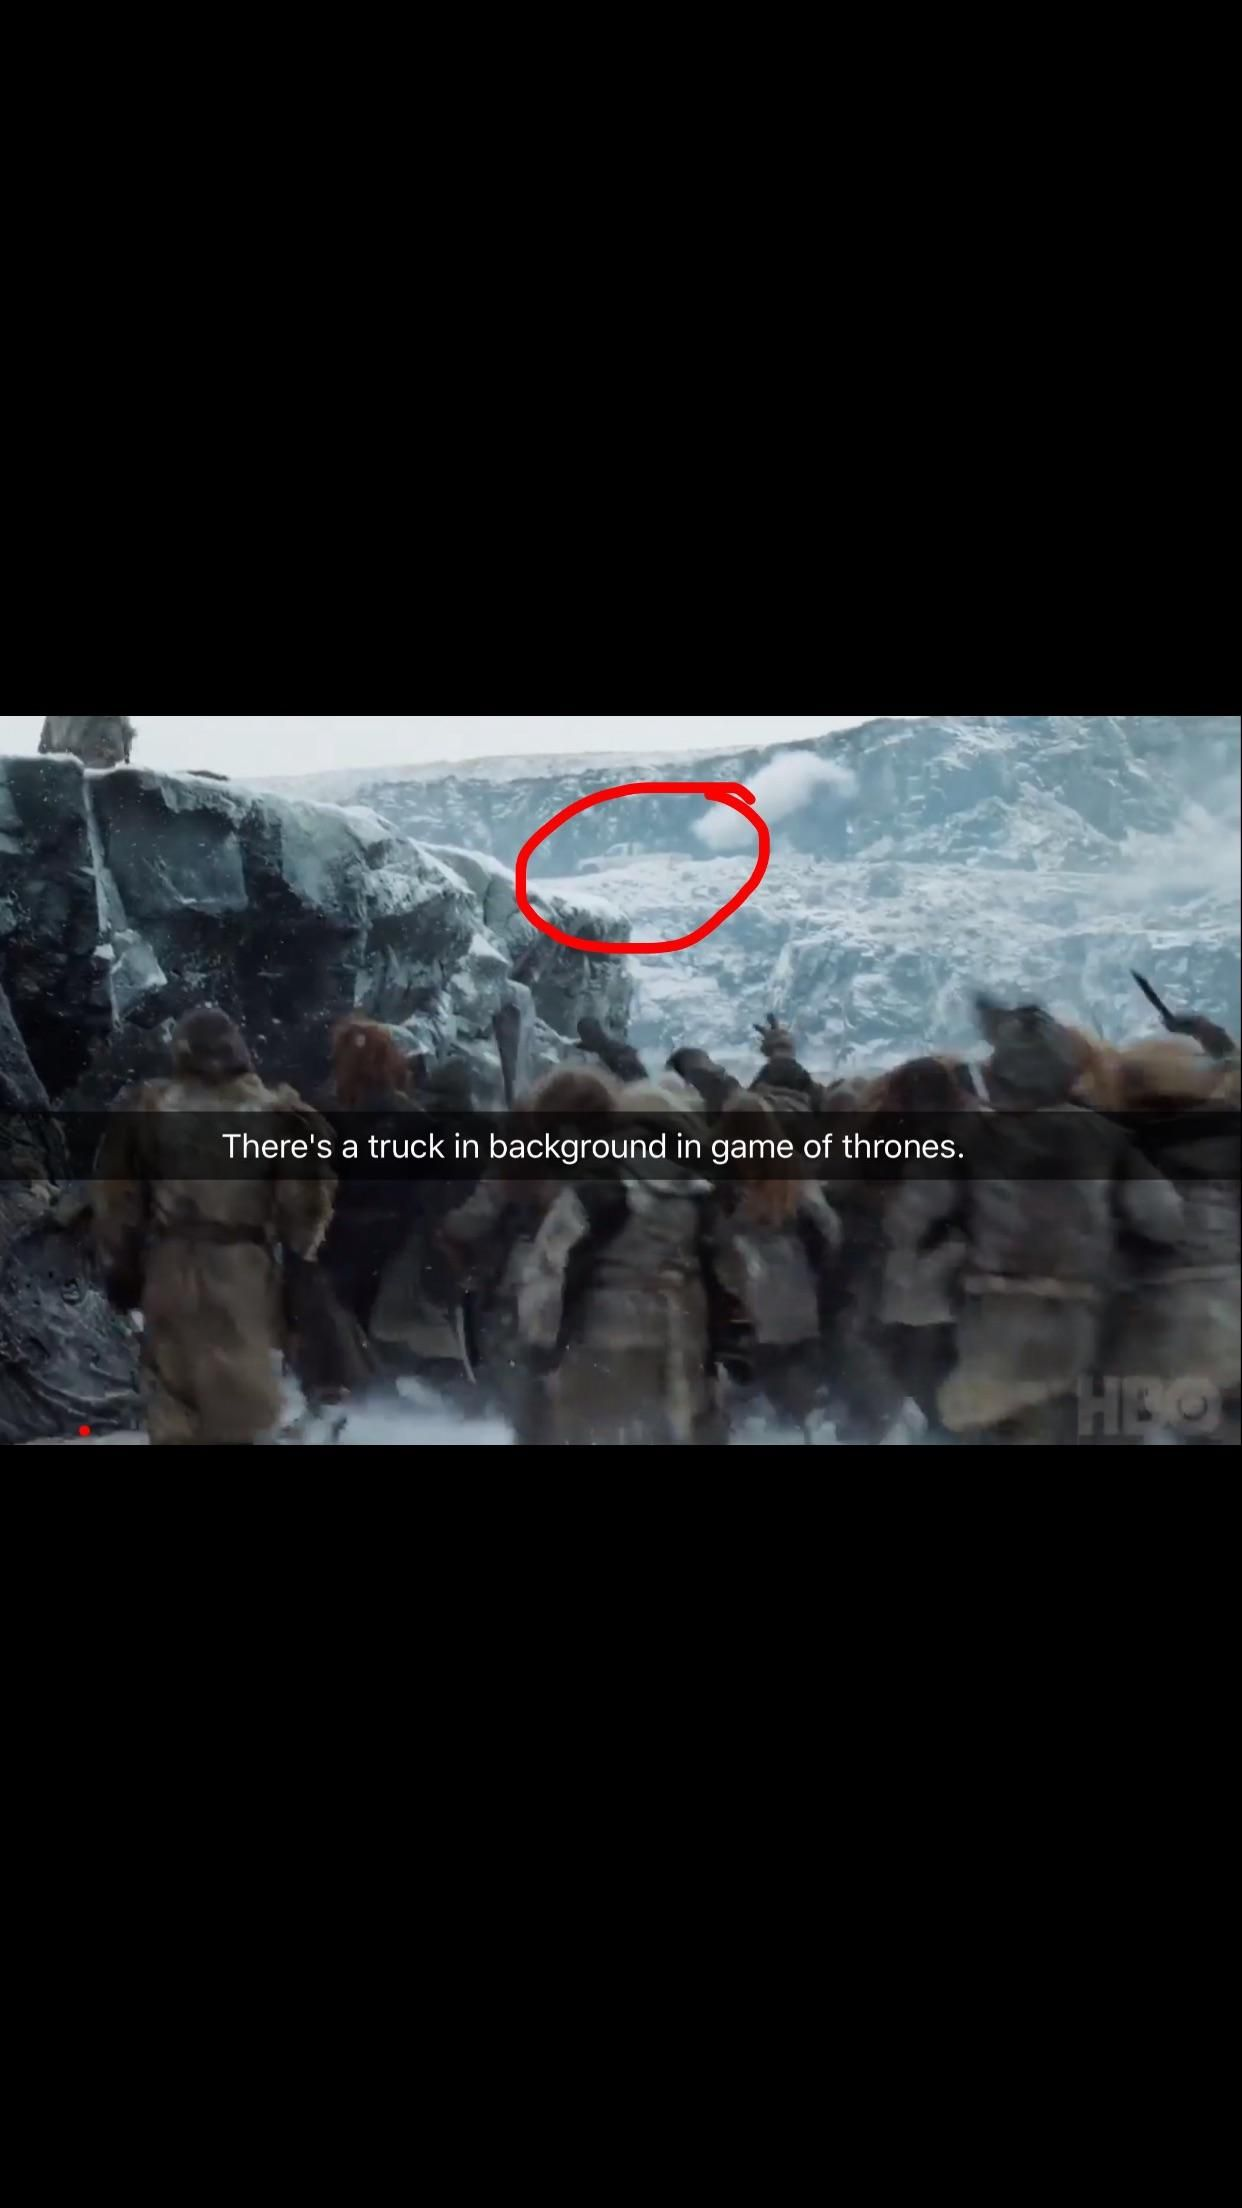 A pickup truck in the background of Game of Thrones